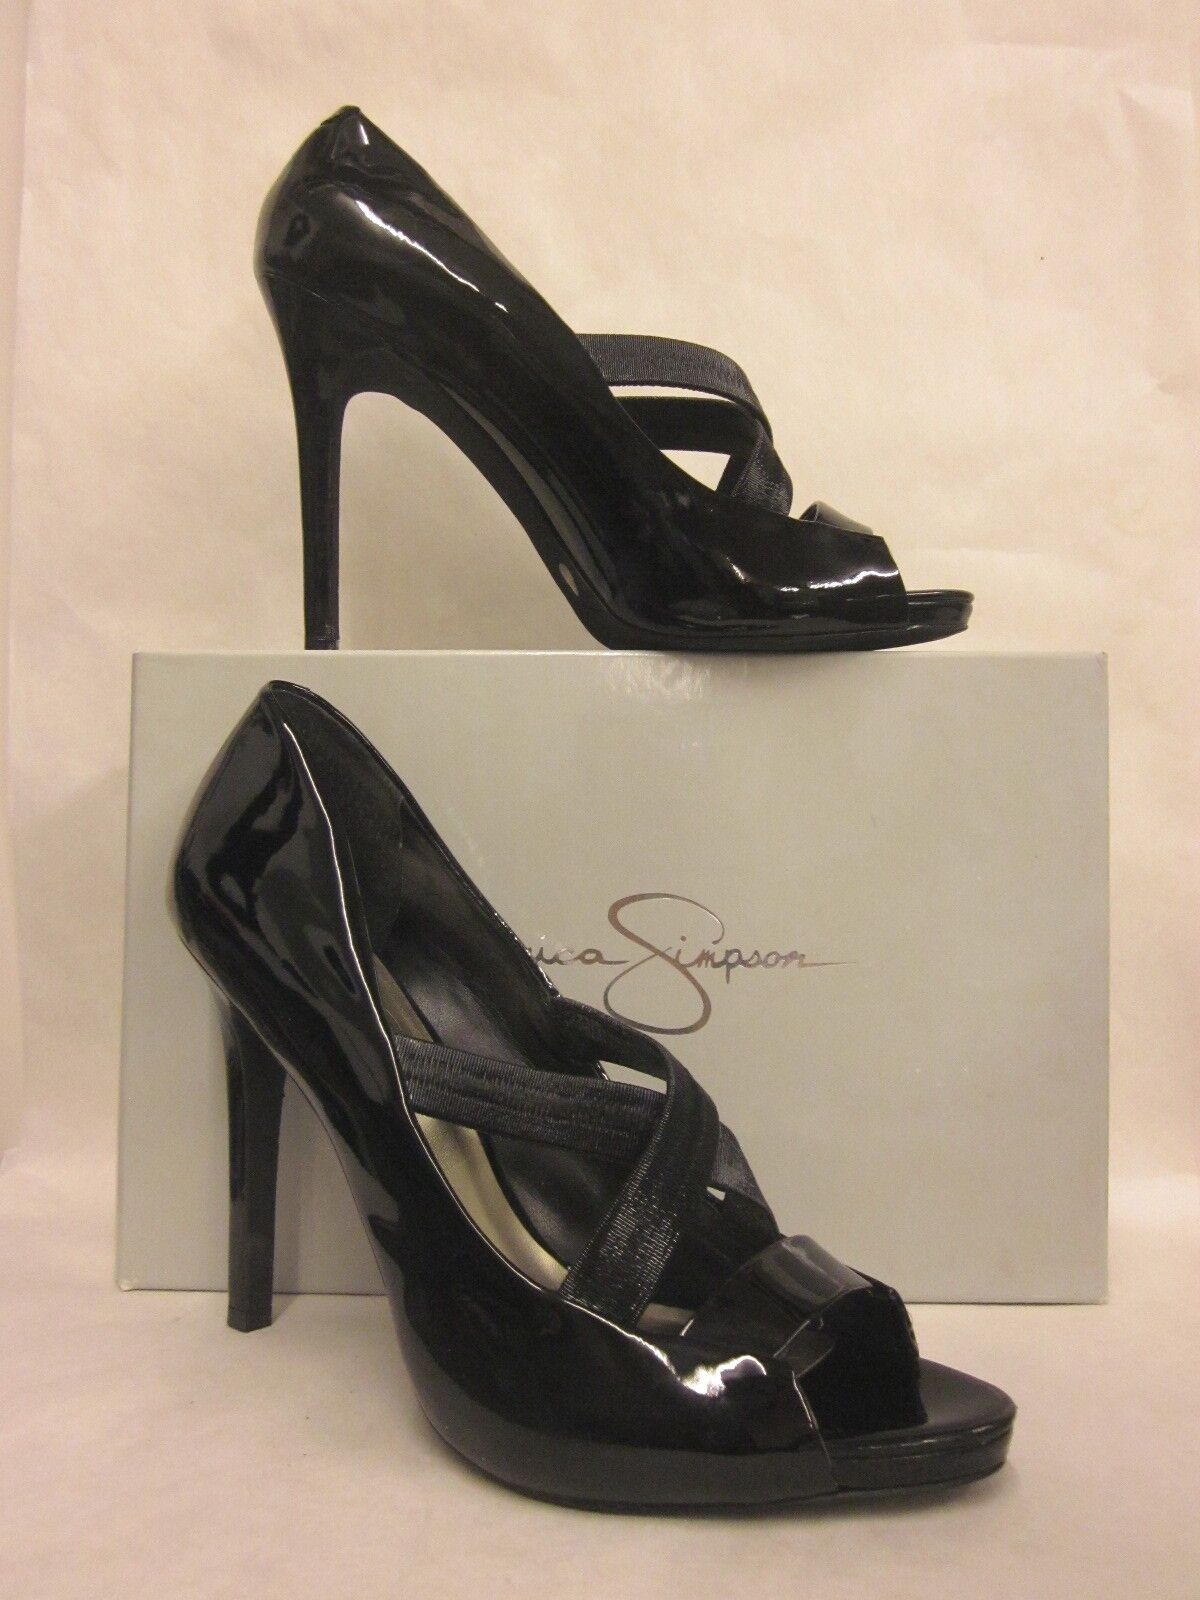 Jessica Simpson Laqua black patent open toe shoe - Size 10